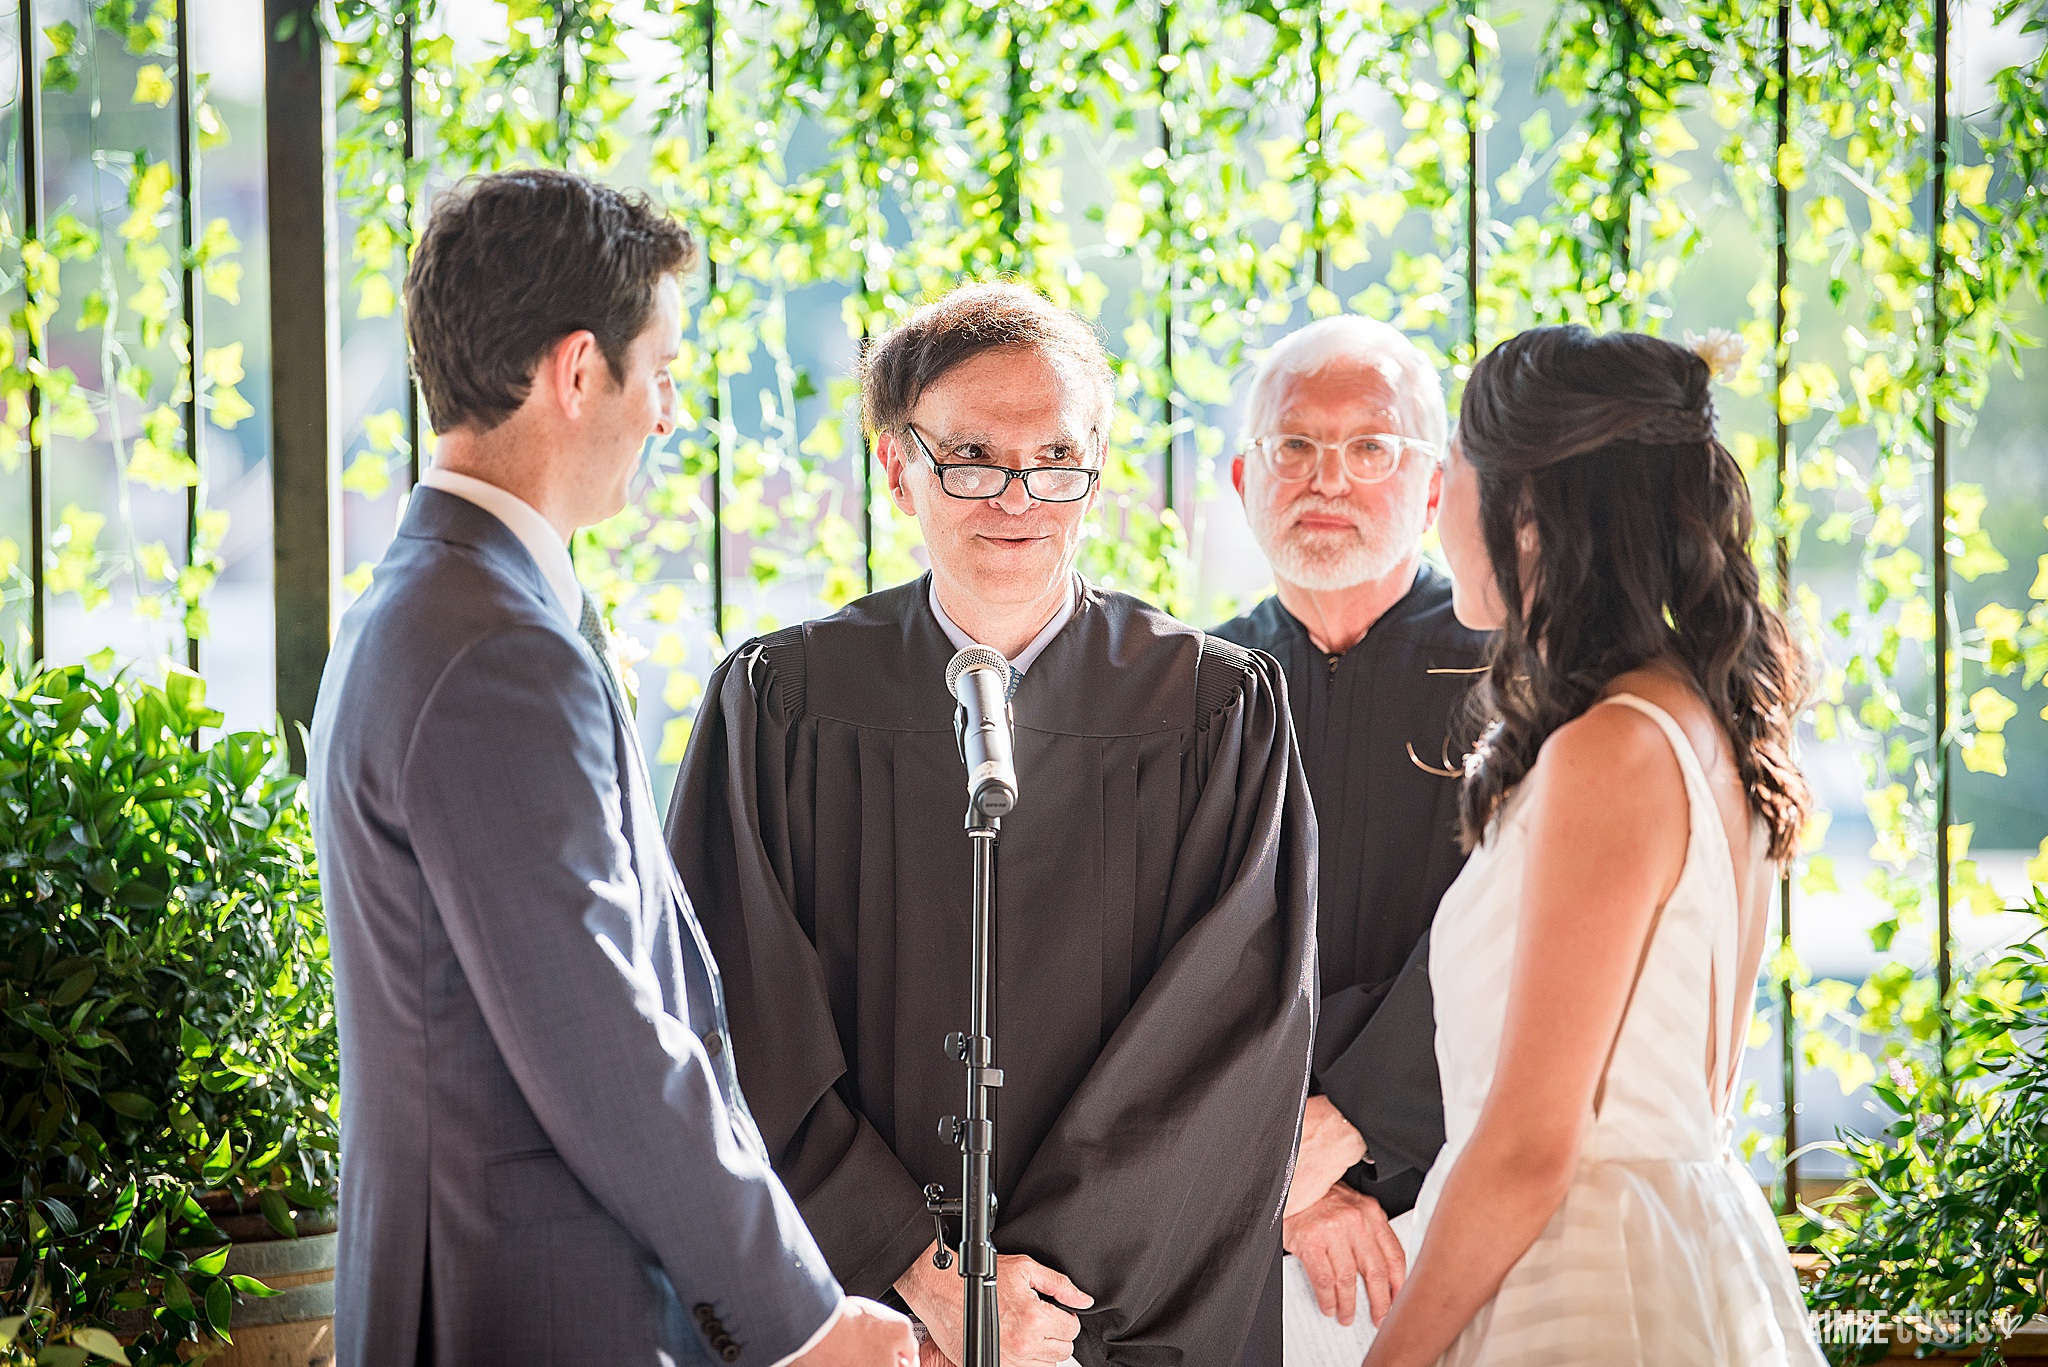 Like when not one, but TWO(!) of the judges the groom had clerked for officiated!